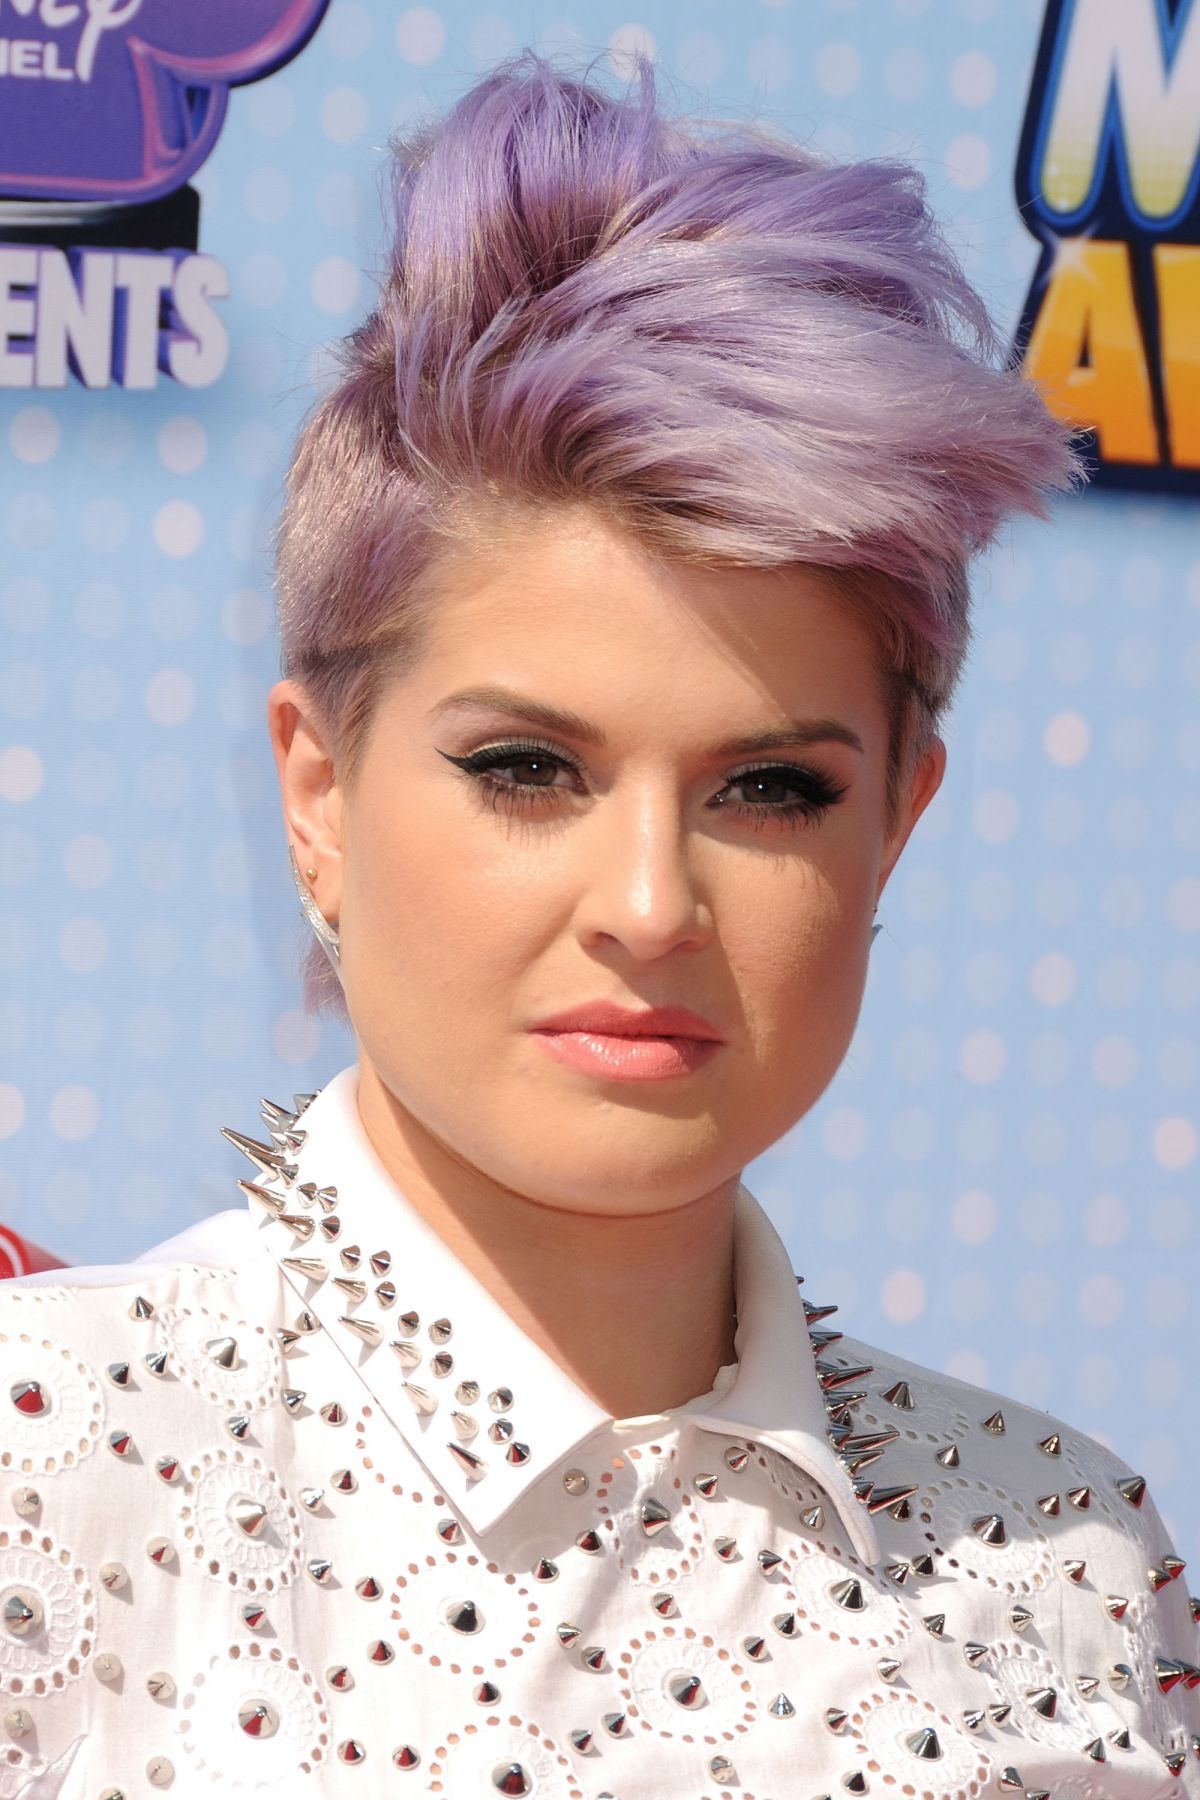 KELLY OSBOURNE at Radio Disney Music Awards 2014 in Los ...Kelly Osbourne Age